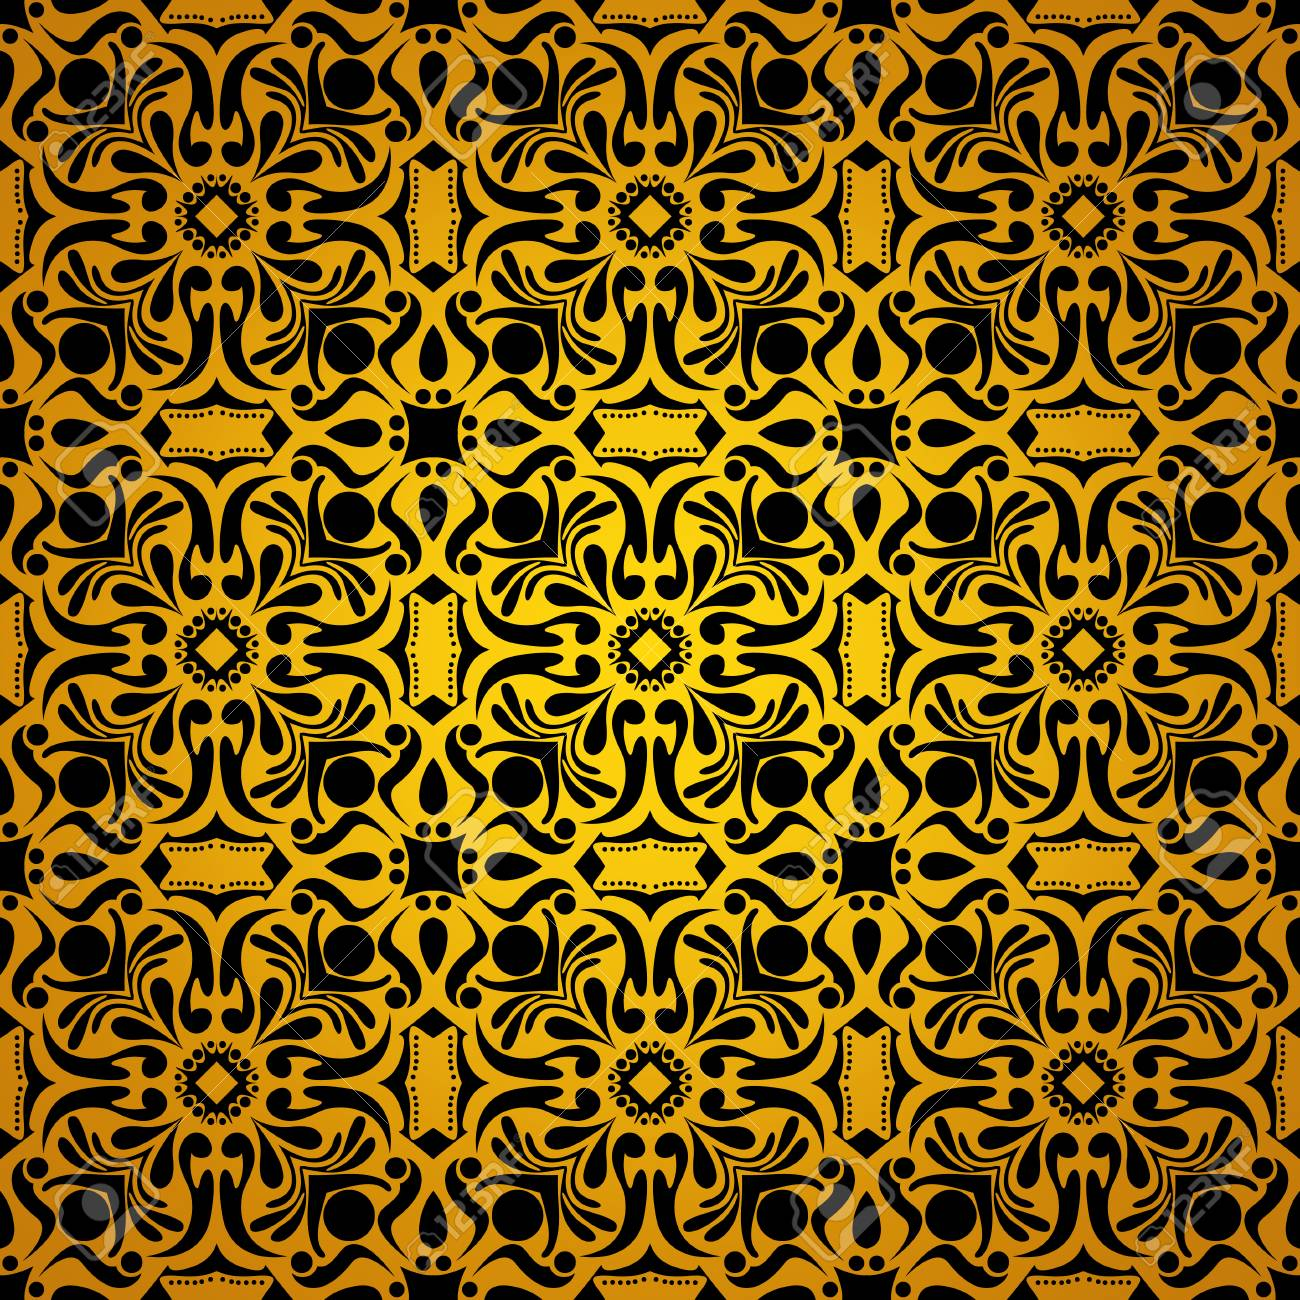 Black And Yellow Vintage Floral Background Pattern Wallpaper Stock Photo Picture And Royalty Free Image Image 88336860